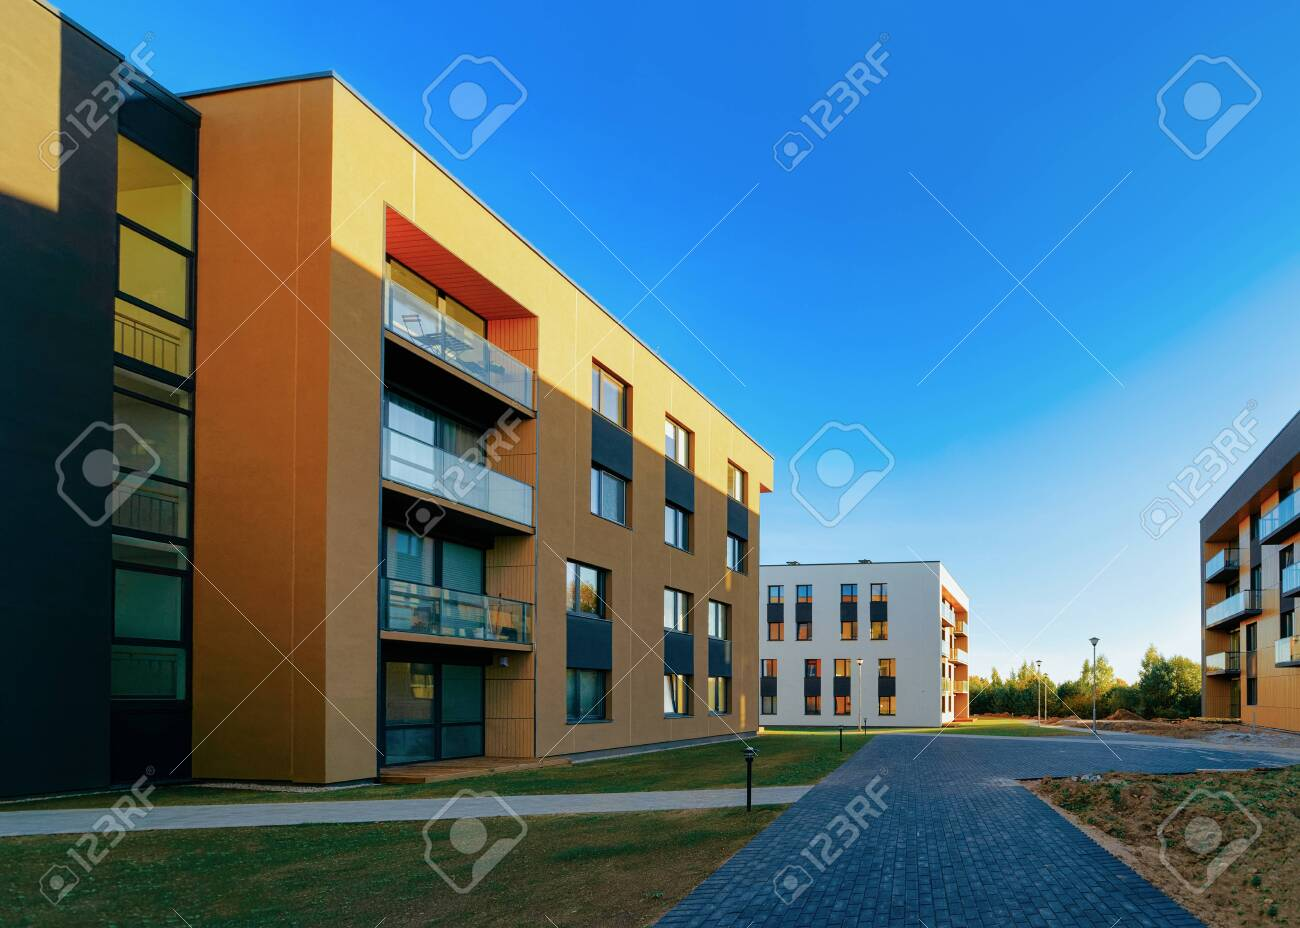 Residential Apartment homes facade architecture and outdoor facilities - 134403661